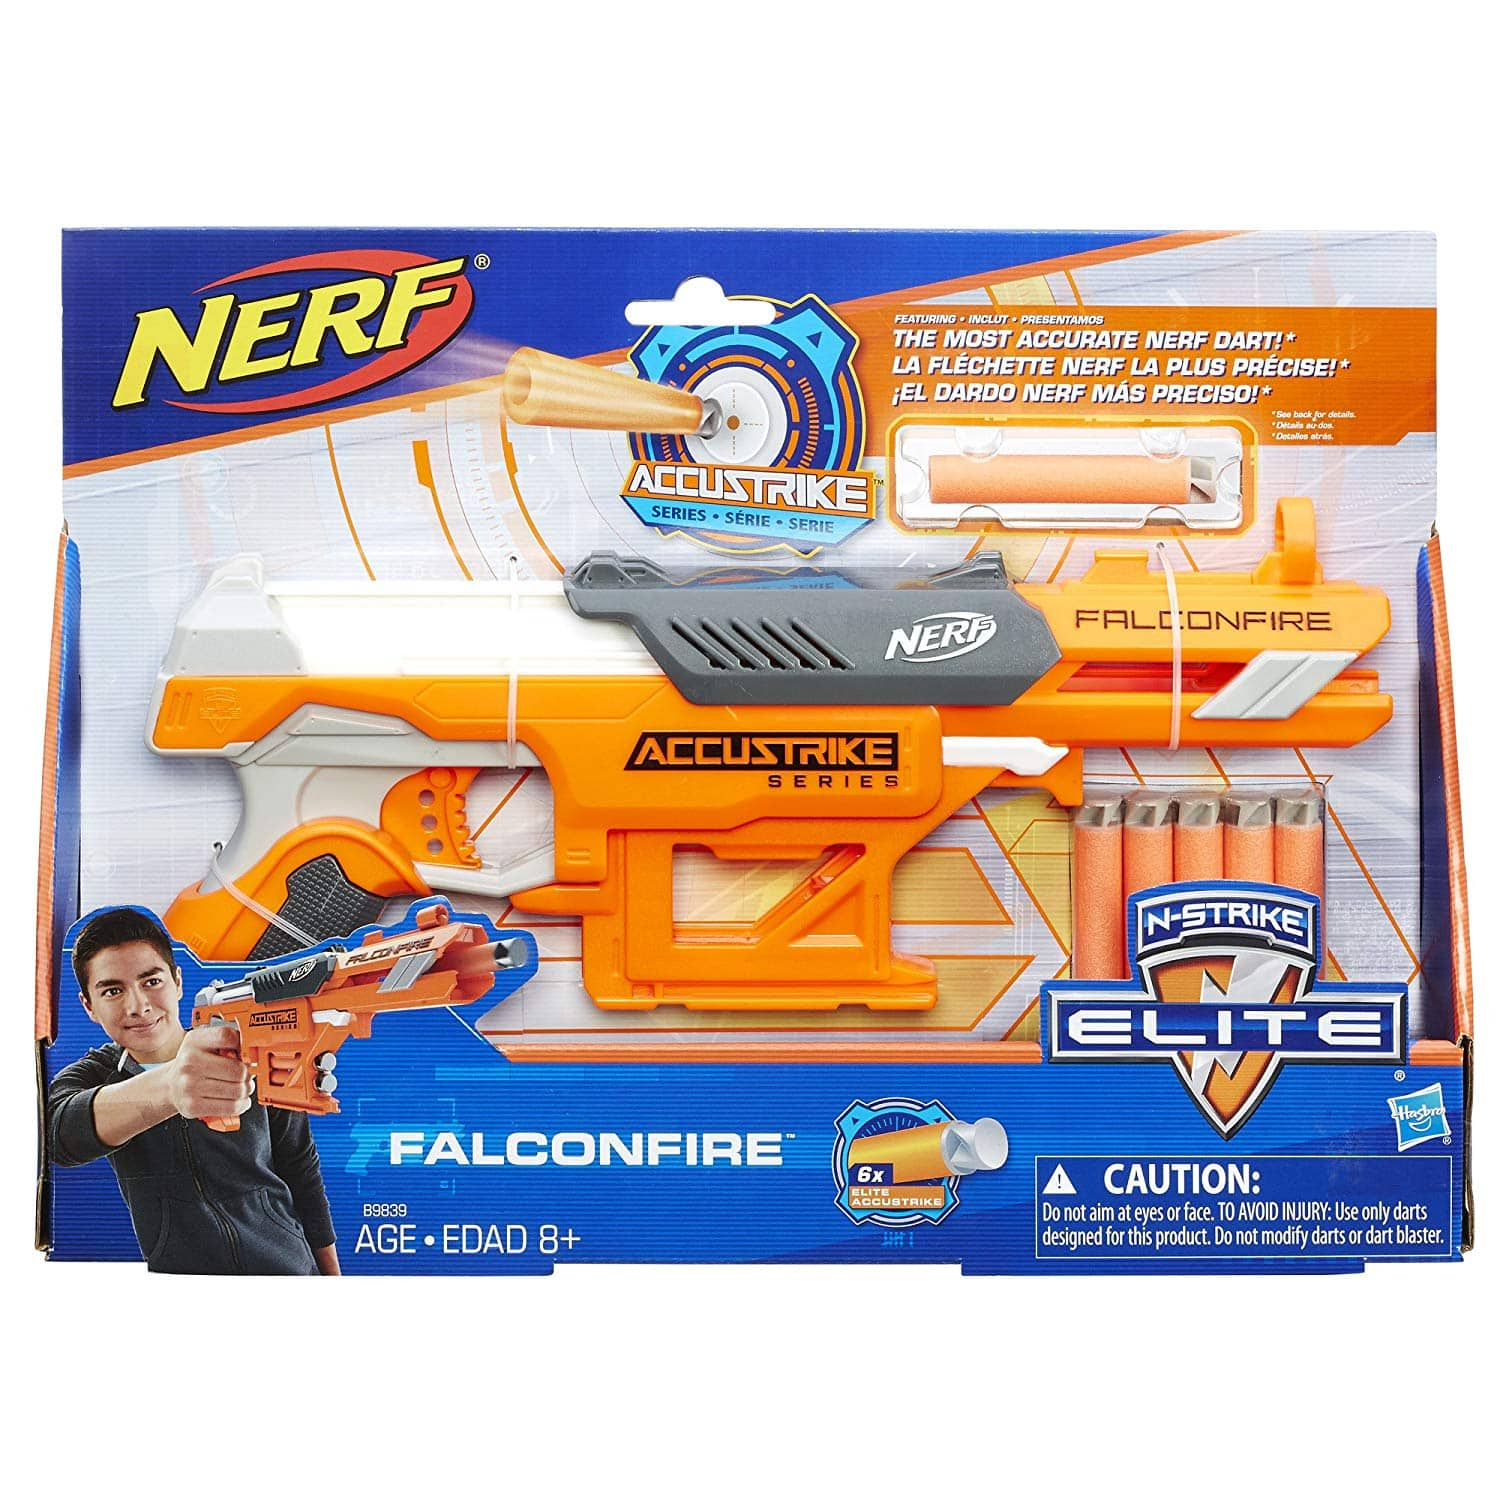 Nerf N-Strike Elite AccuStrike Series FalconFire $4.00 Clearance In-store Only YMMV